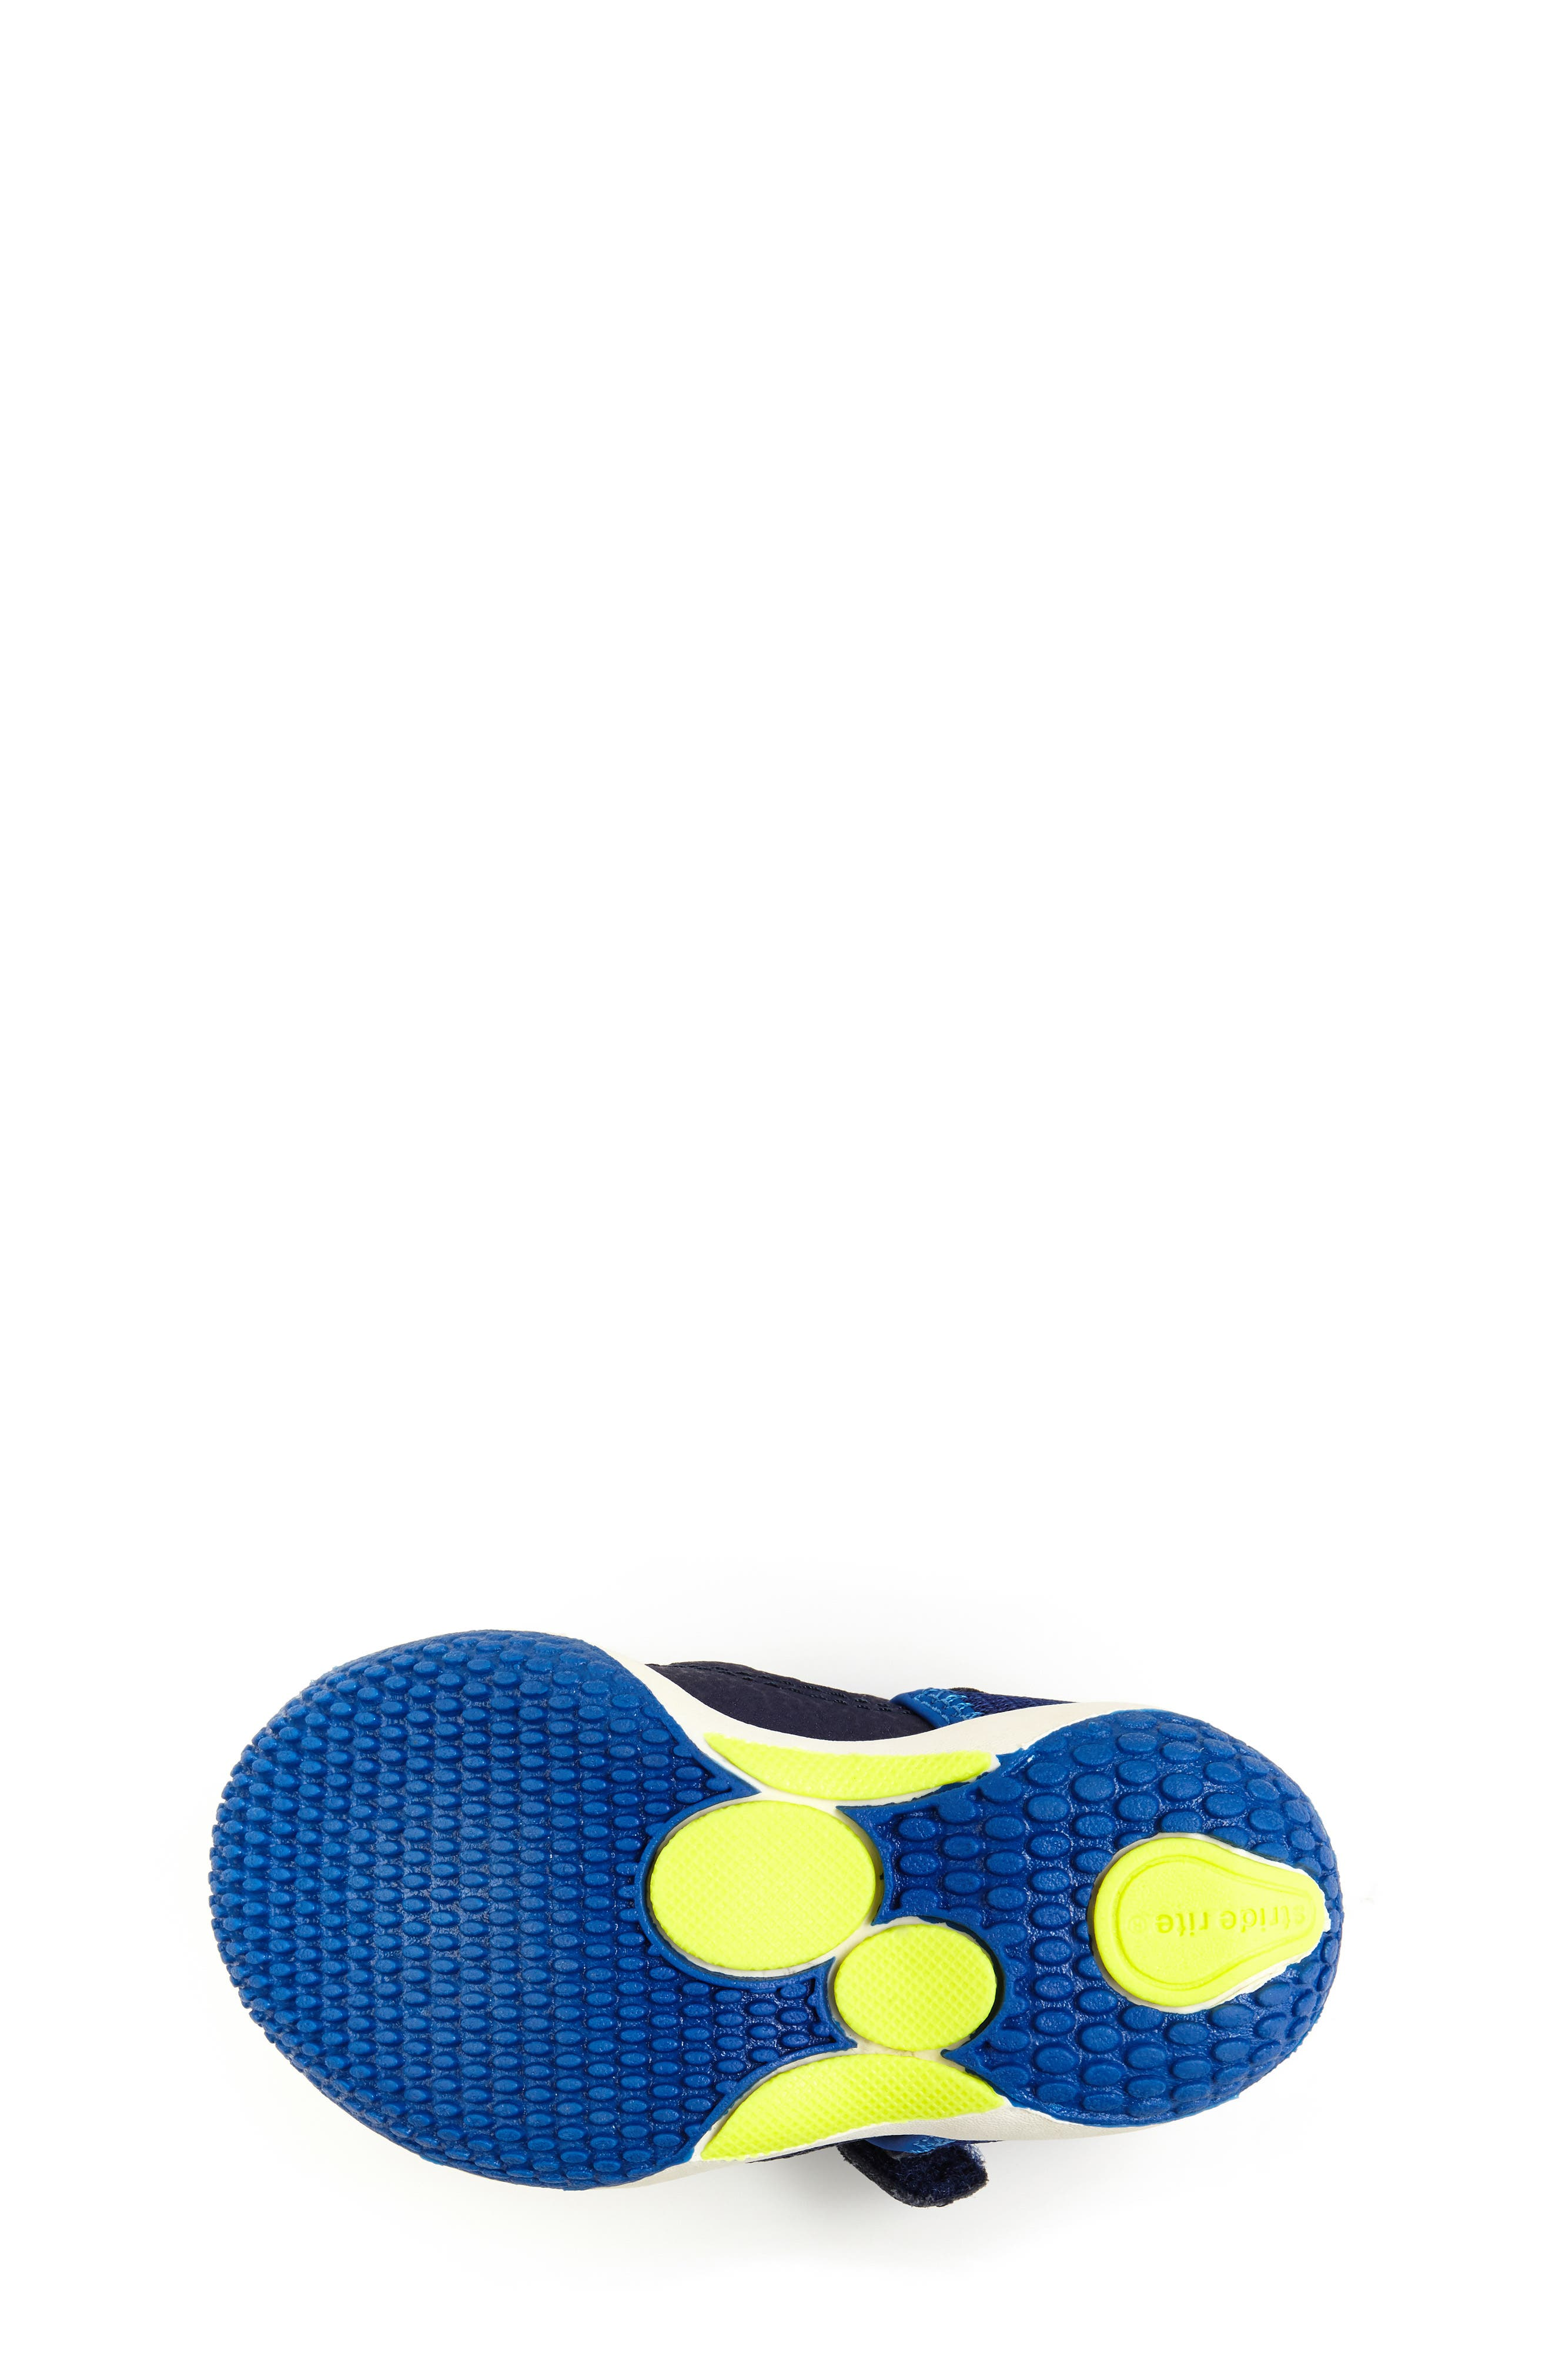 STRIDE RITE,                             Marina Water Sandal,                             Alternate thumbnail 5, color,                             ELECTRIC BLUE LEATHER/ TEXTILE